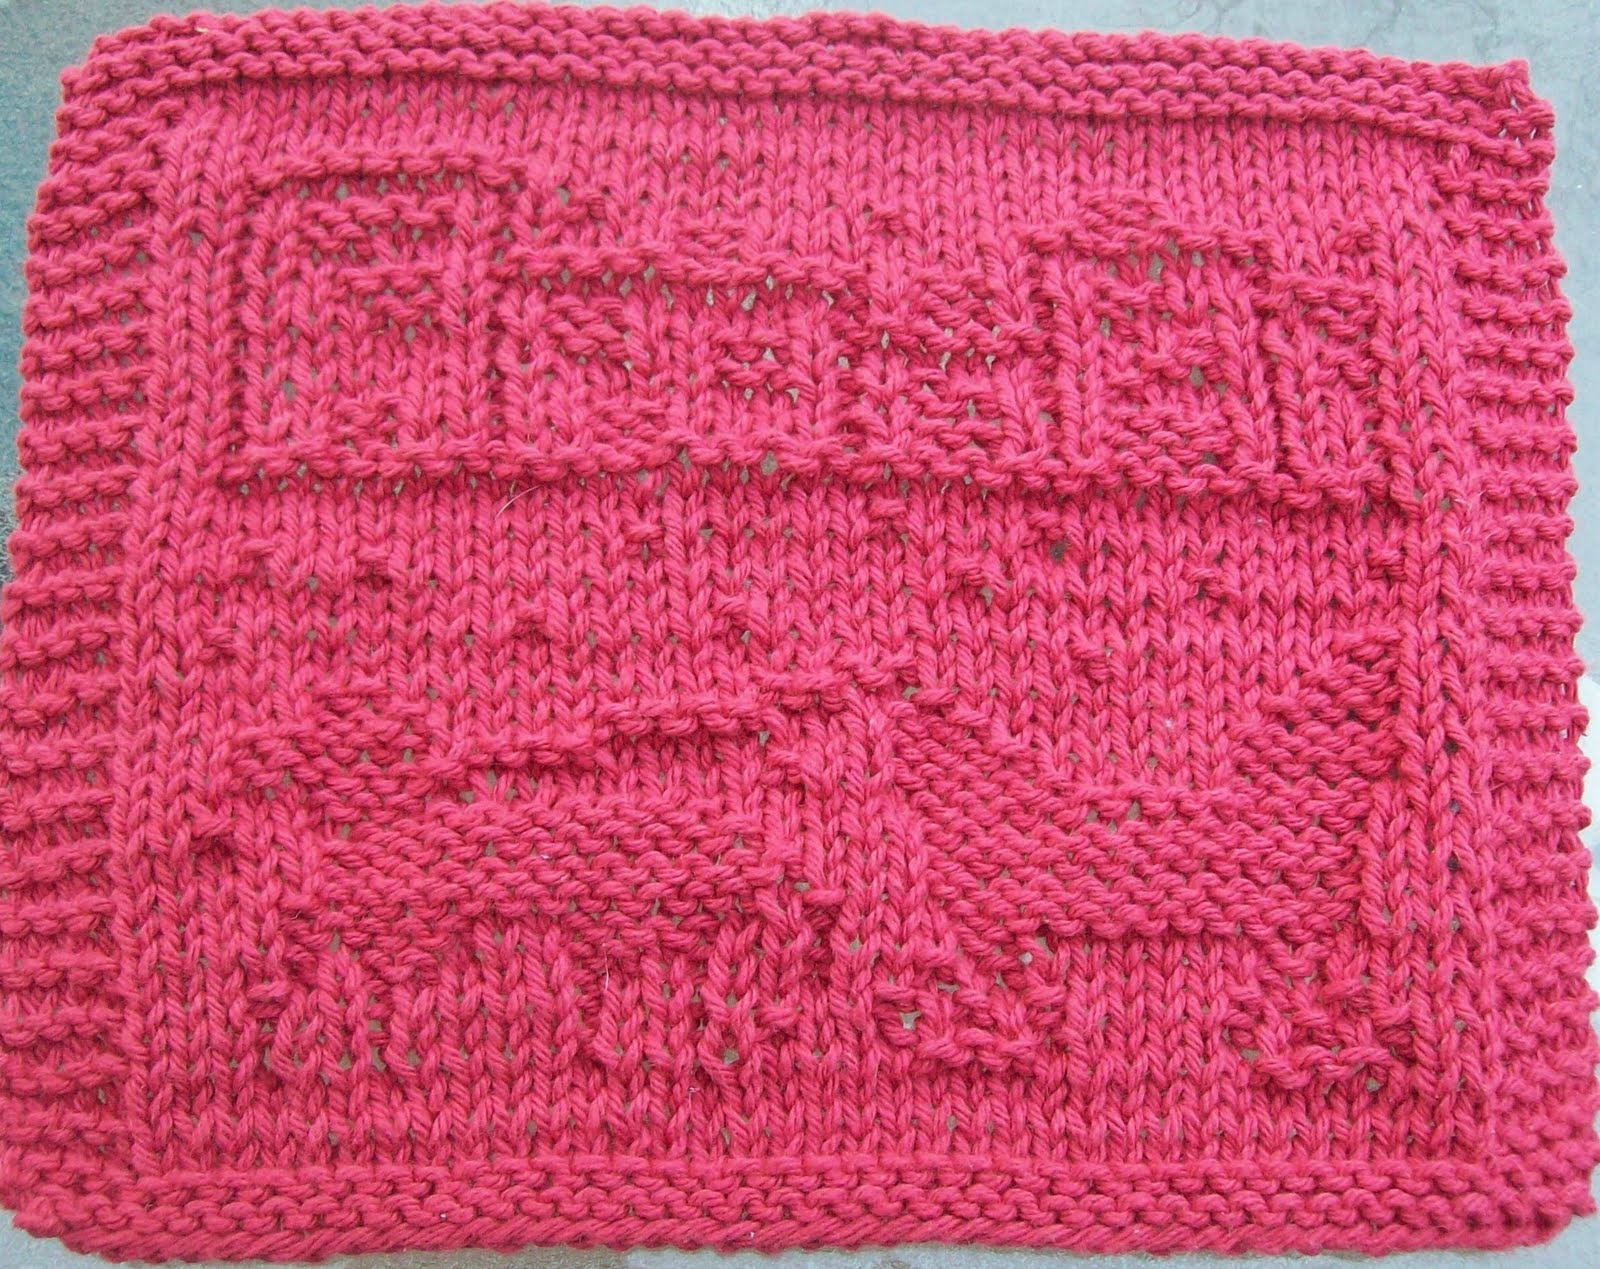 Knit Dishcloth Pattern Horse : DigKnitty Designs: Winter Carriage Ride Knit Dishcloth Pattern